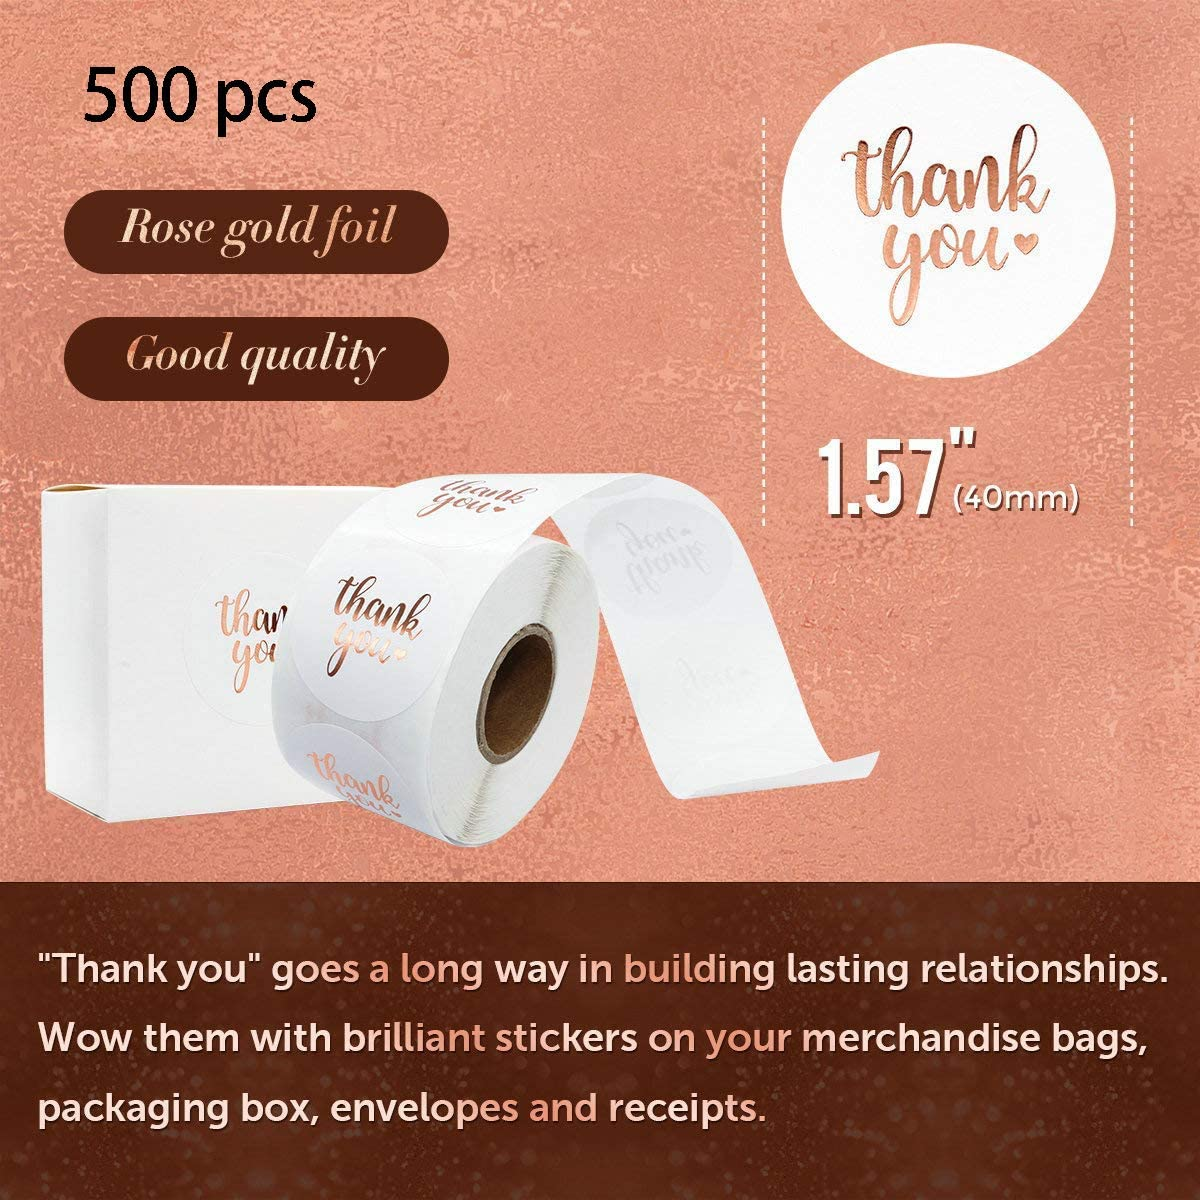 Decoration Boxes Foil Pink Thank You Stickers Roll 1.5 Thank You Stickers Small Business Foil Thank You Tags 500 Labels//Roll for Envelope Gift Bags